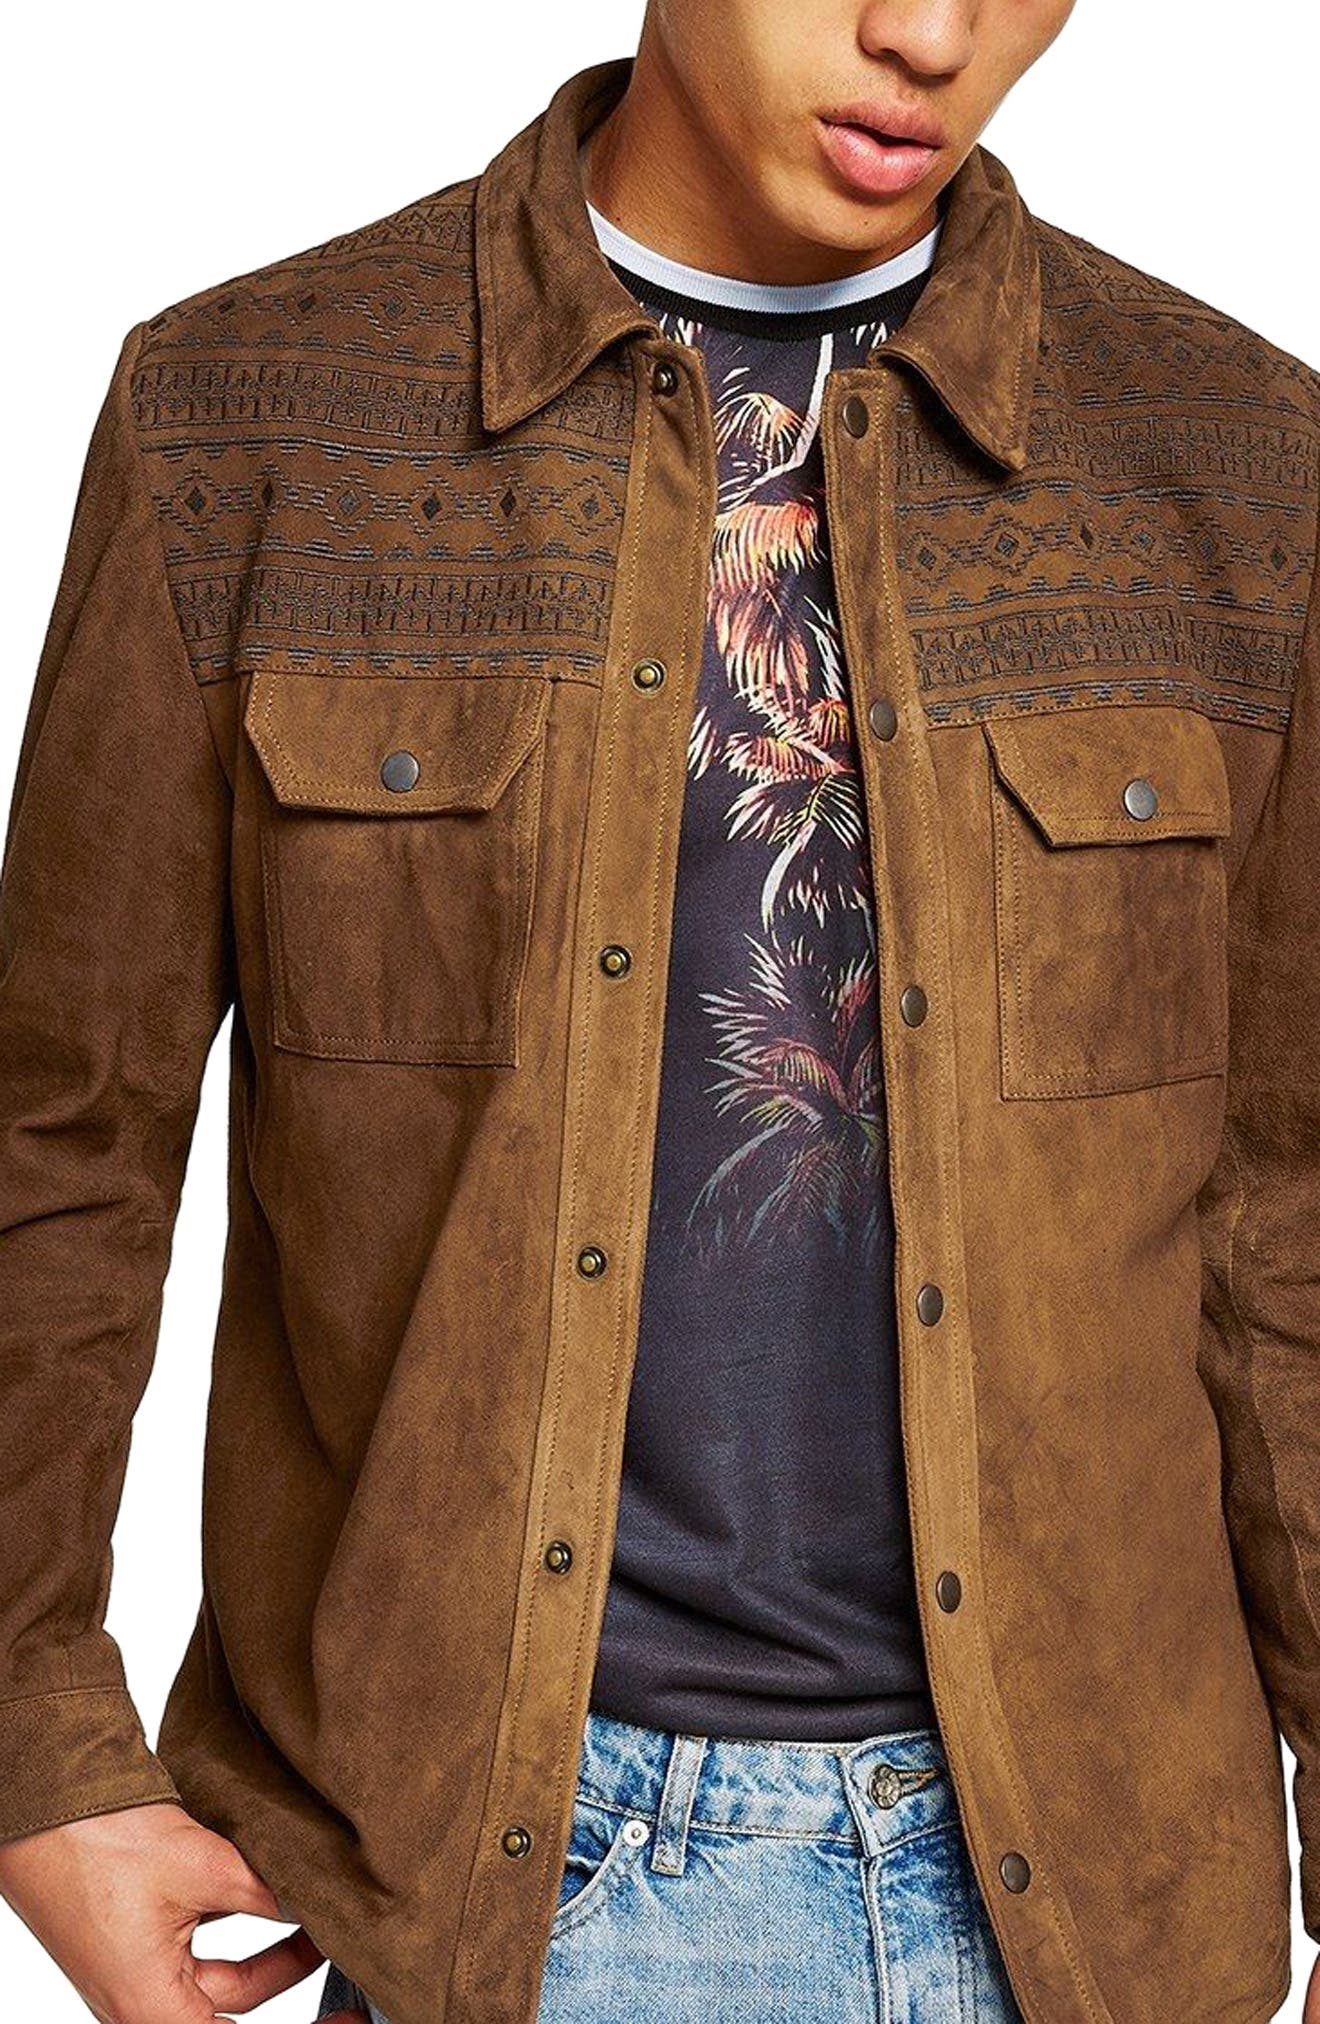 Embroidered Suede Jacket,                             Main thumbnail 1, color,                             Brown Multi